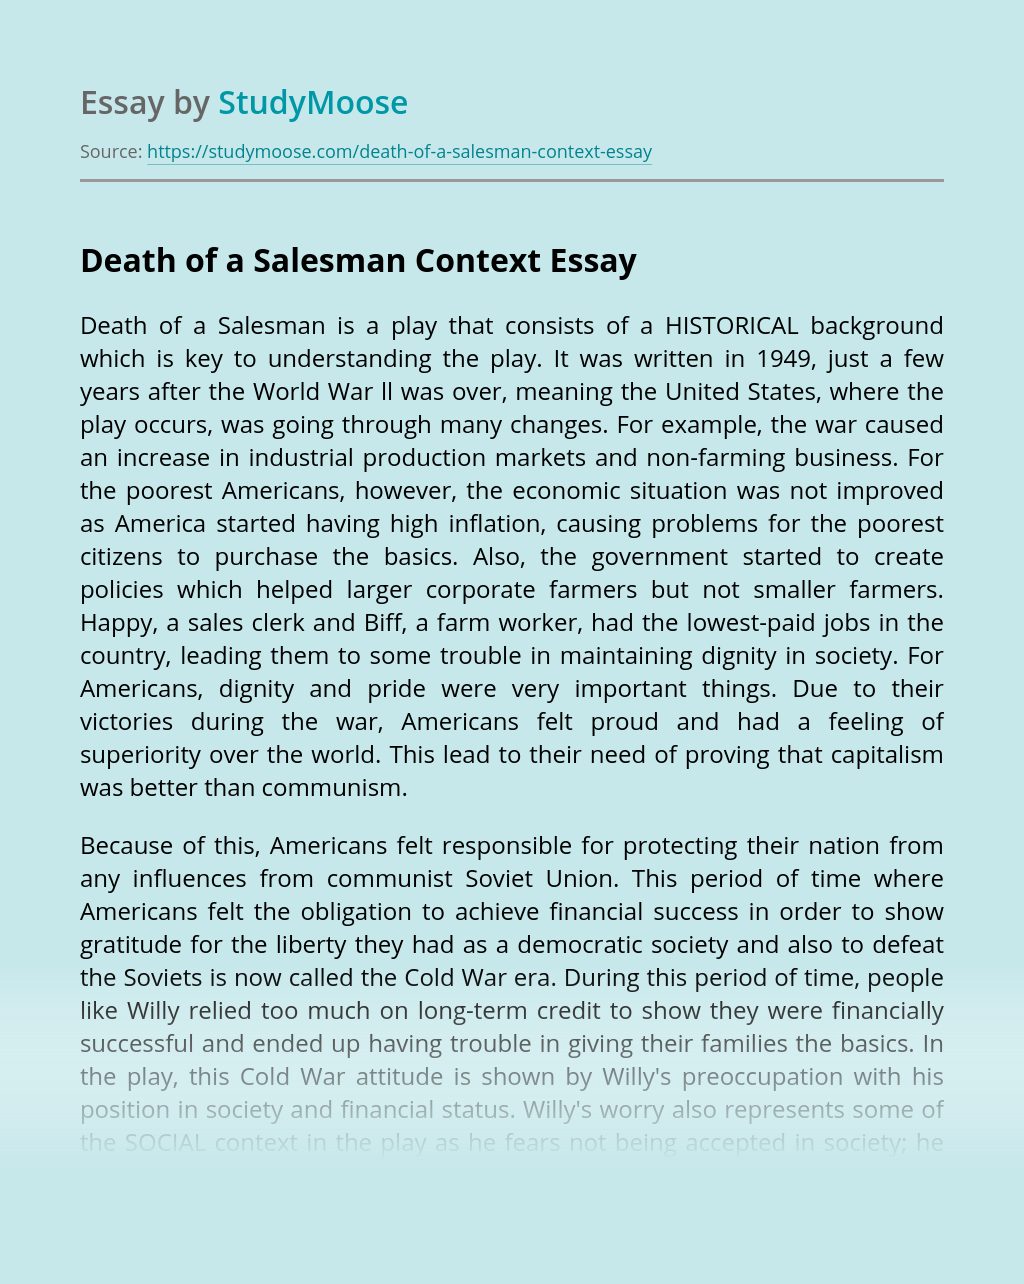 Compare and contrast death of a salesman essay esl research proposal editor services for masters